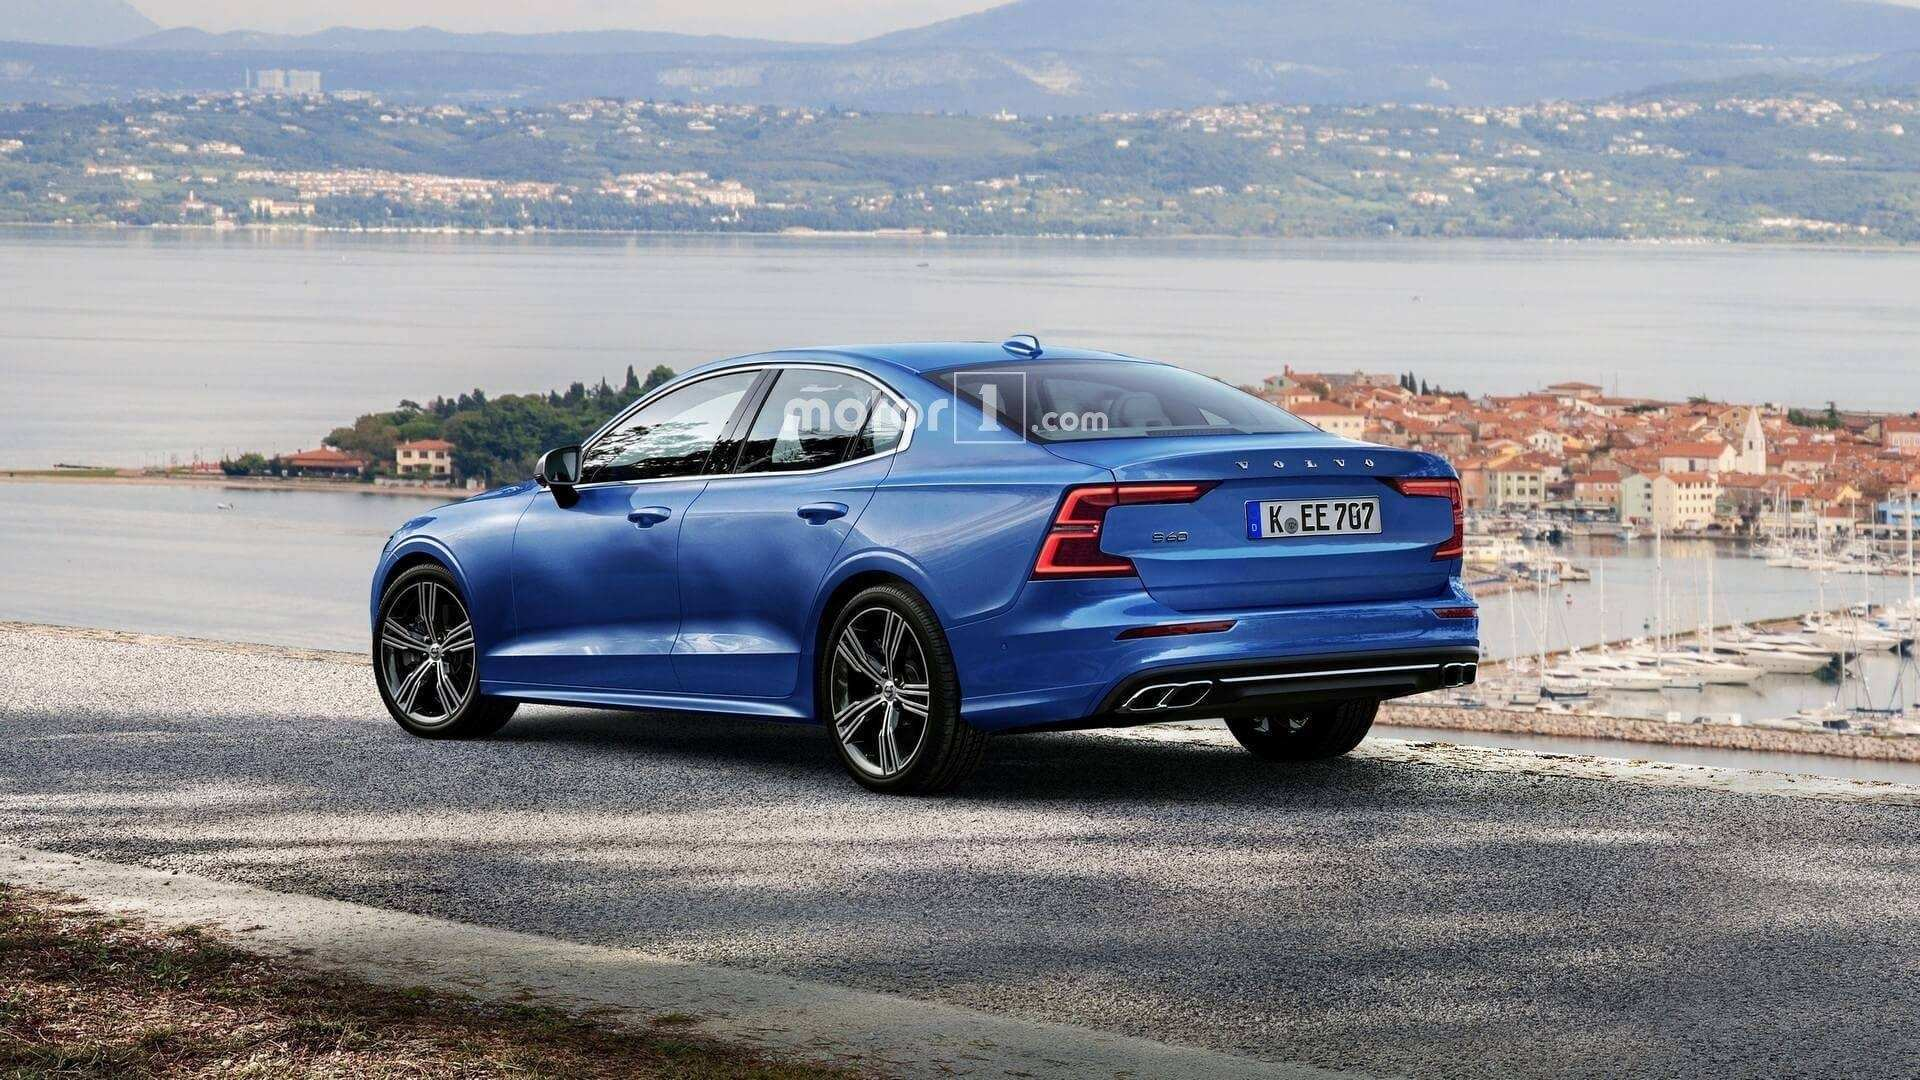 53 All New New Volvo New S60 2019 Release Date And Specs Release Date with New Volvo New S60 2019 Release Date And Specs